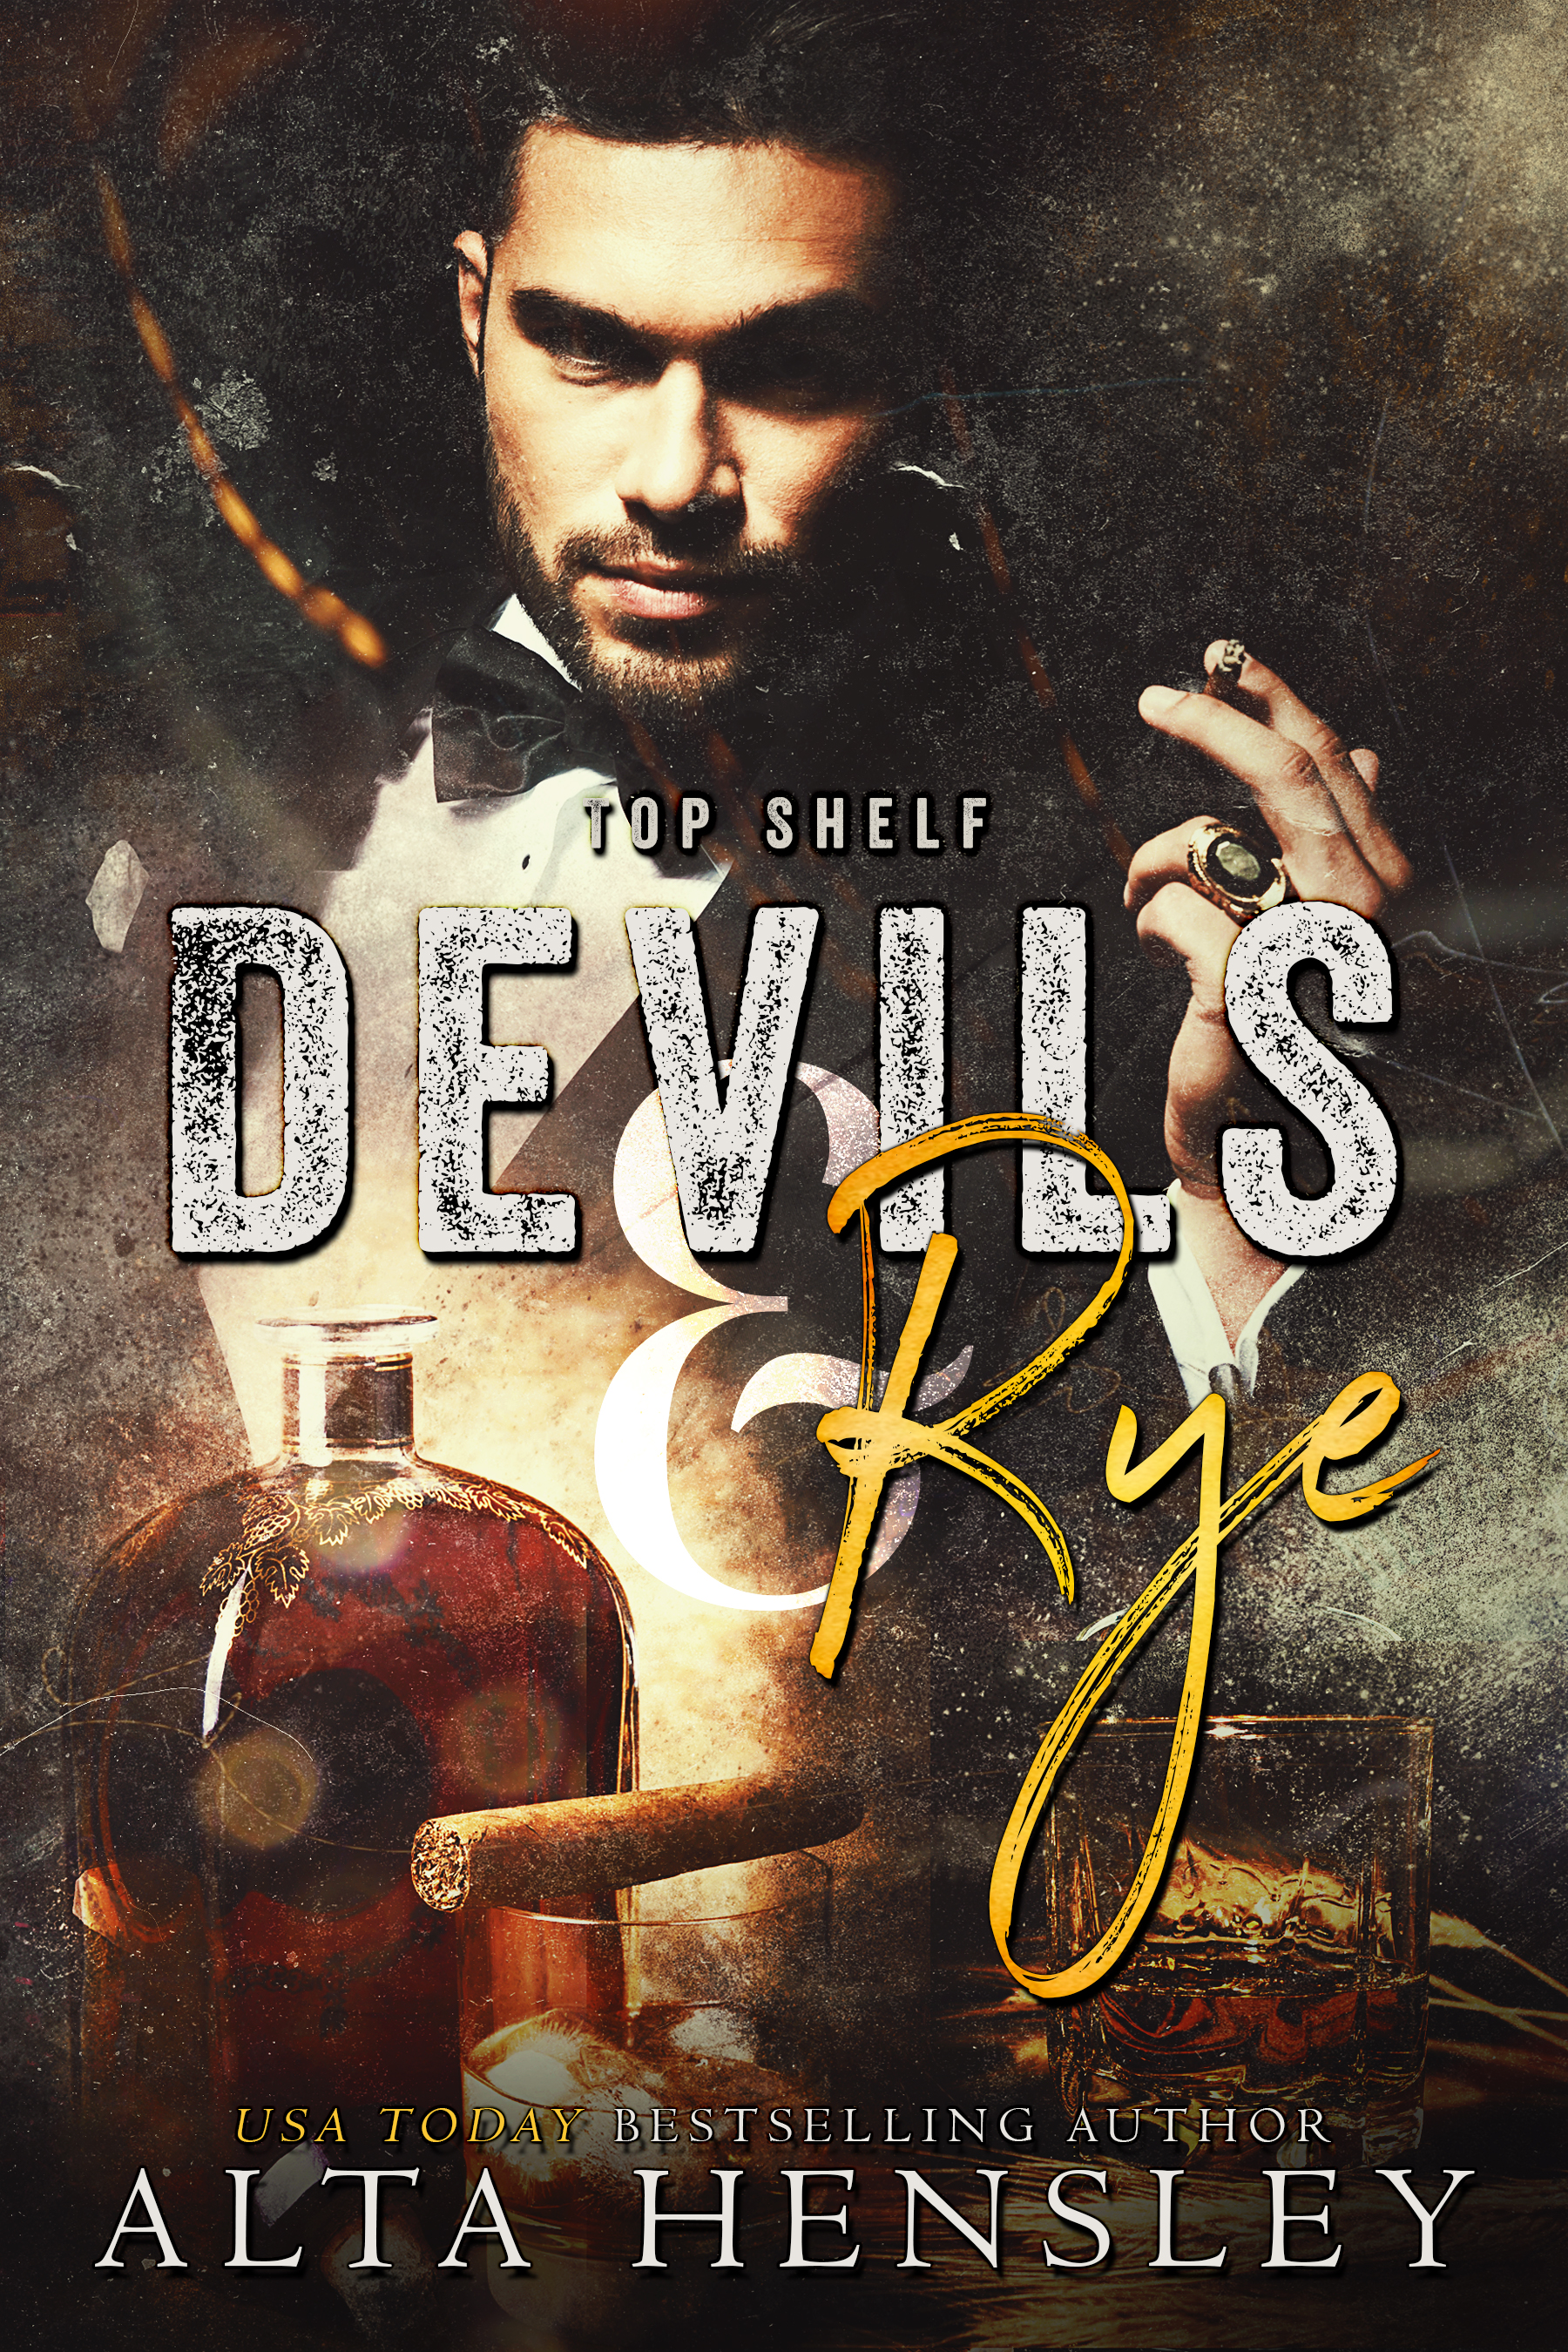 Devils-Rye-customdesign-JayAeer2017-eBook-complete